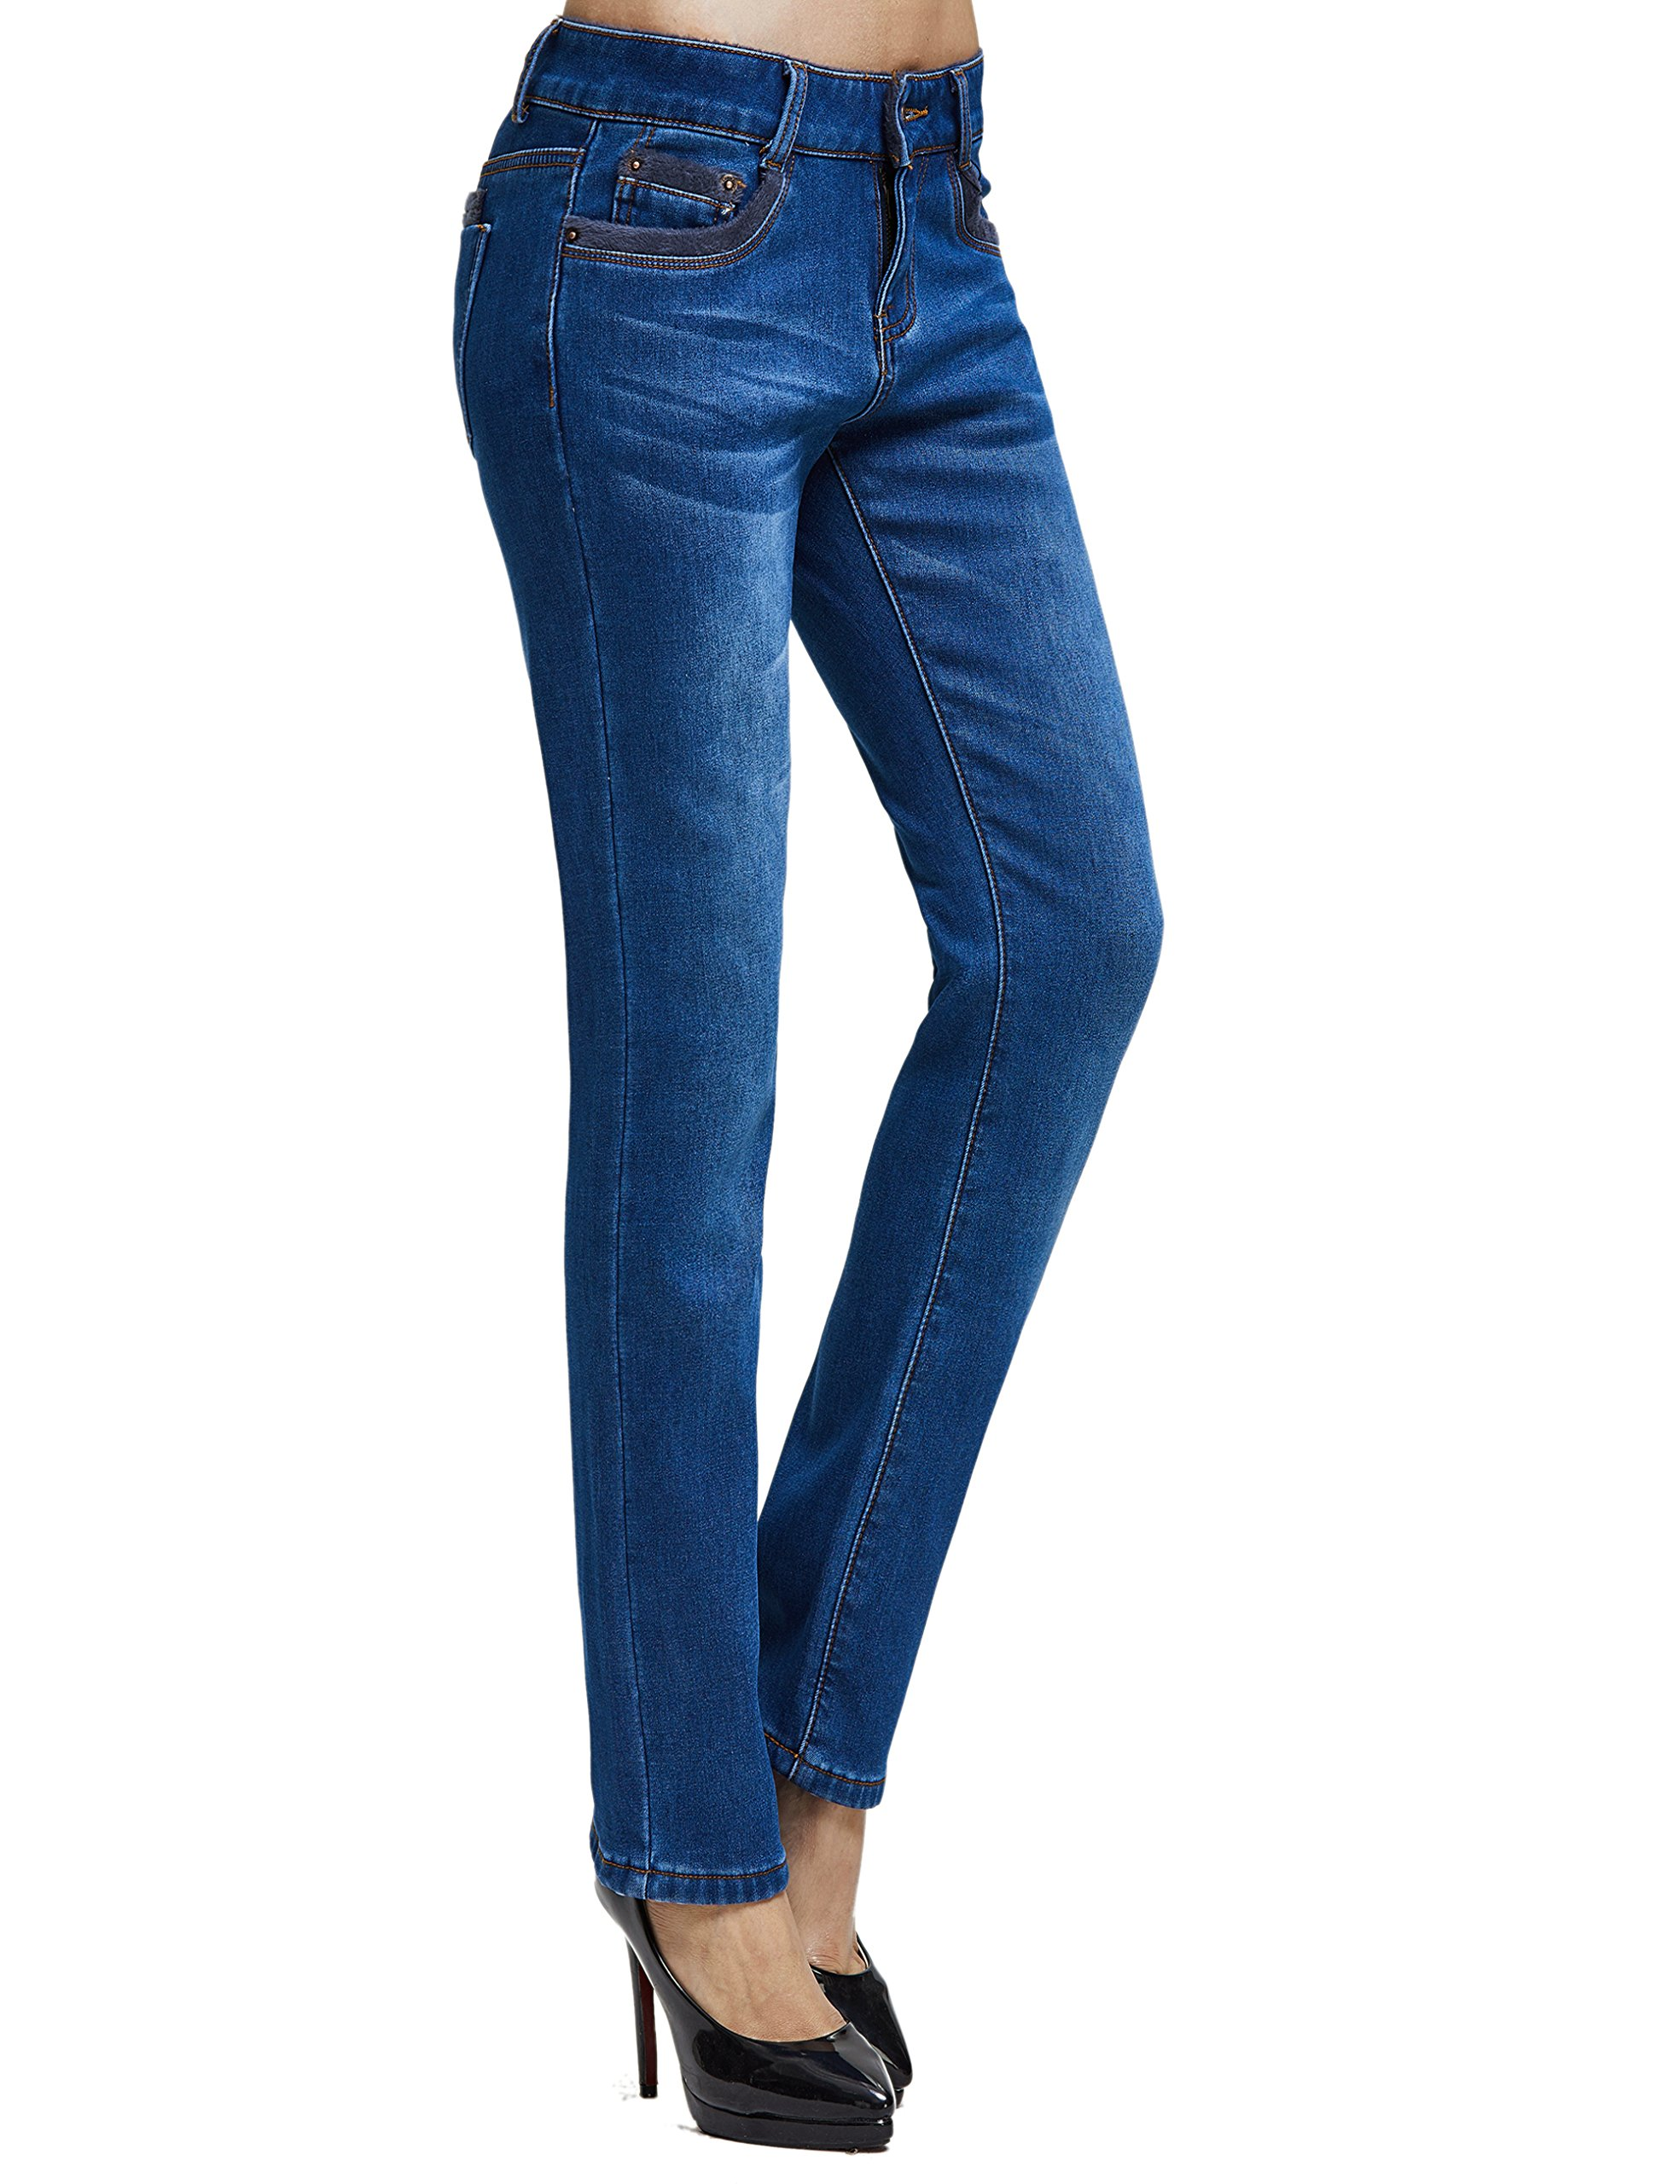 Camii Mia Women's Winter Slim Fit Thermal Jeans Pants (W28 x L30, Blue (New Size)) by Camii Mia (Image #3)